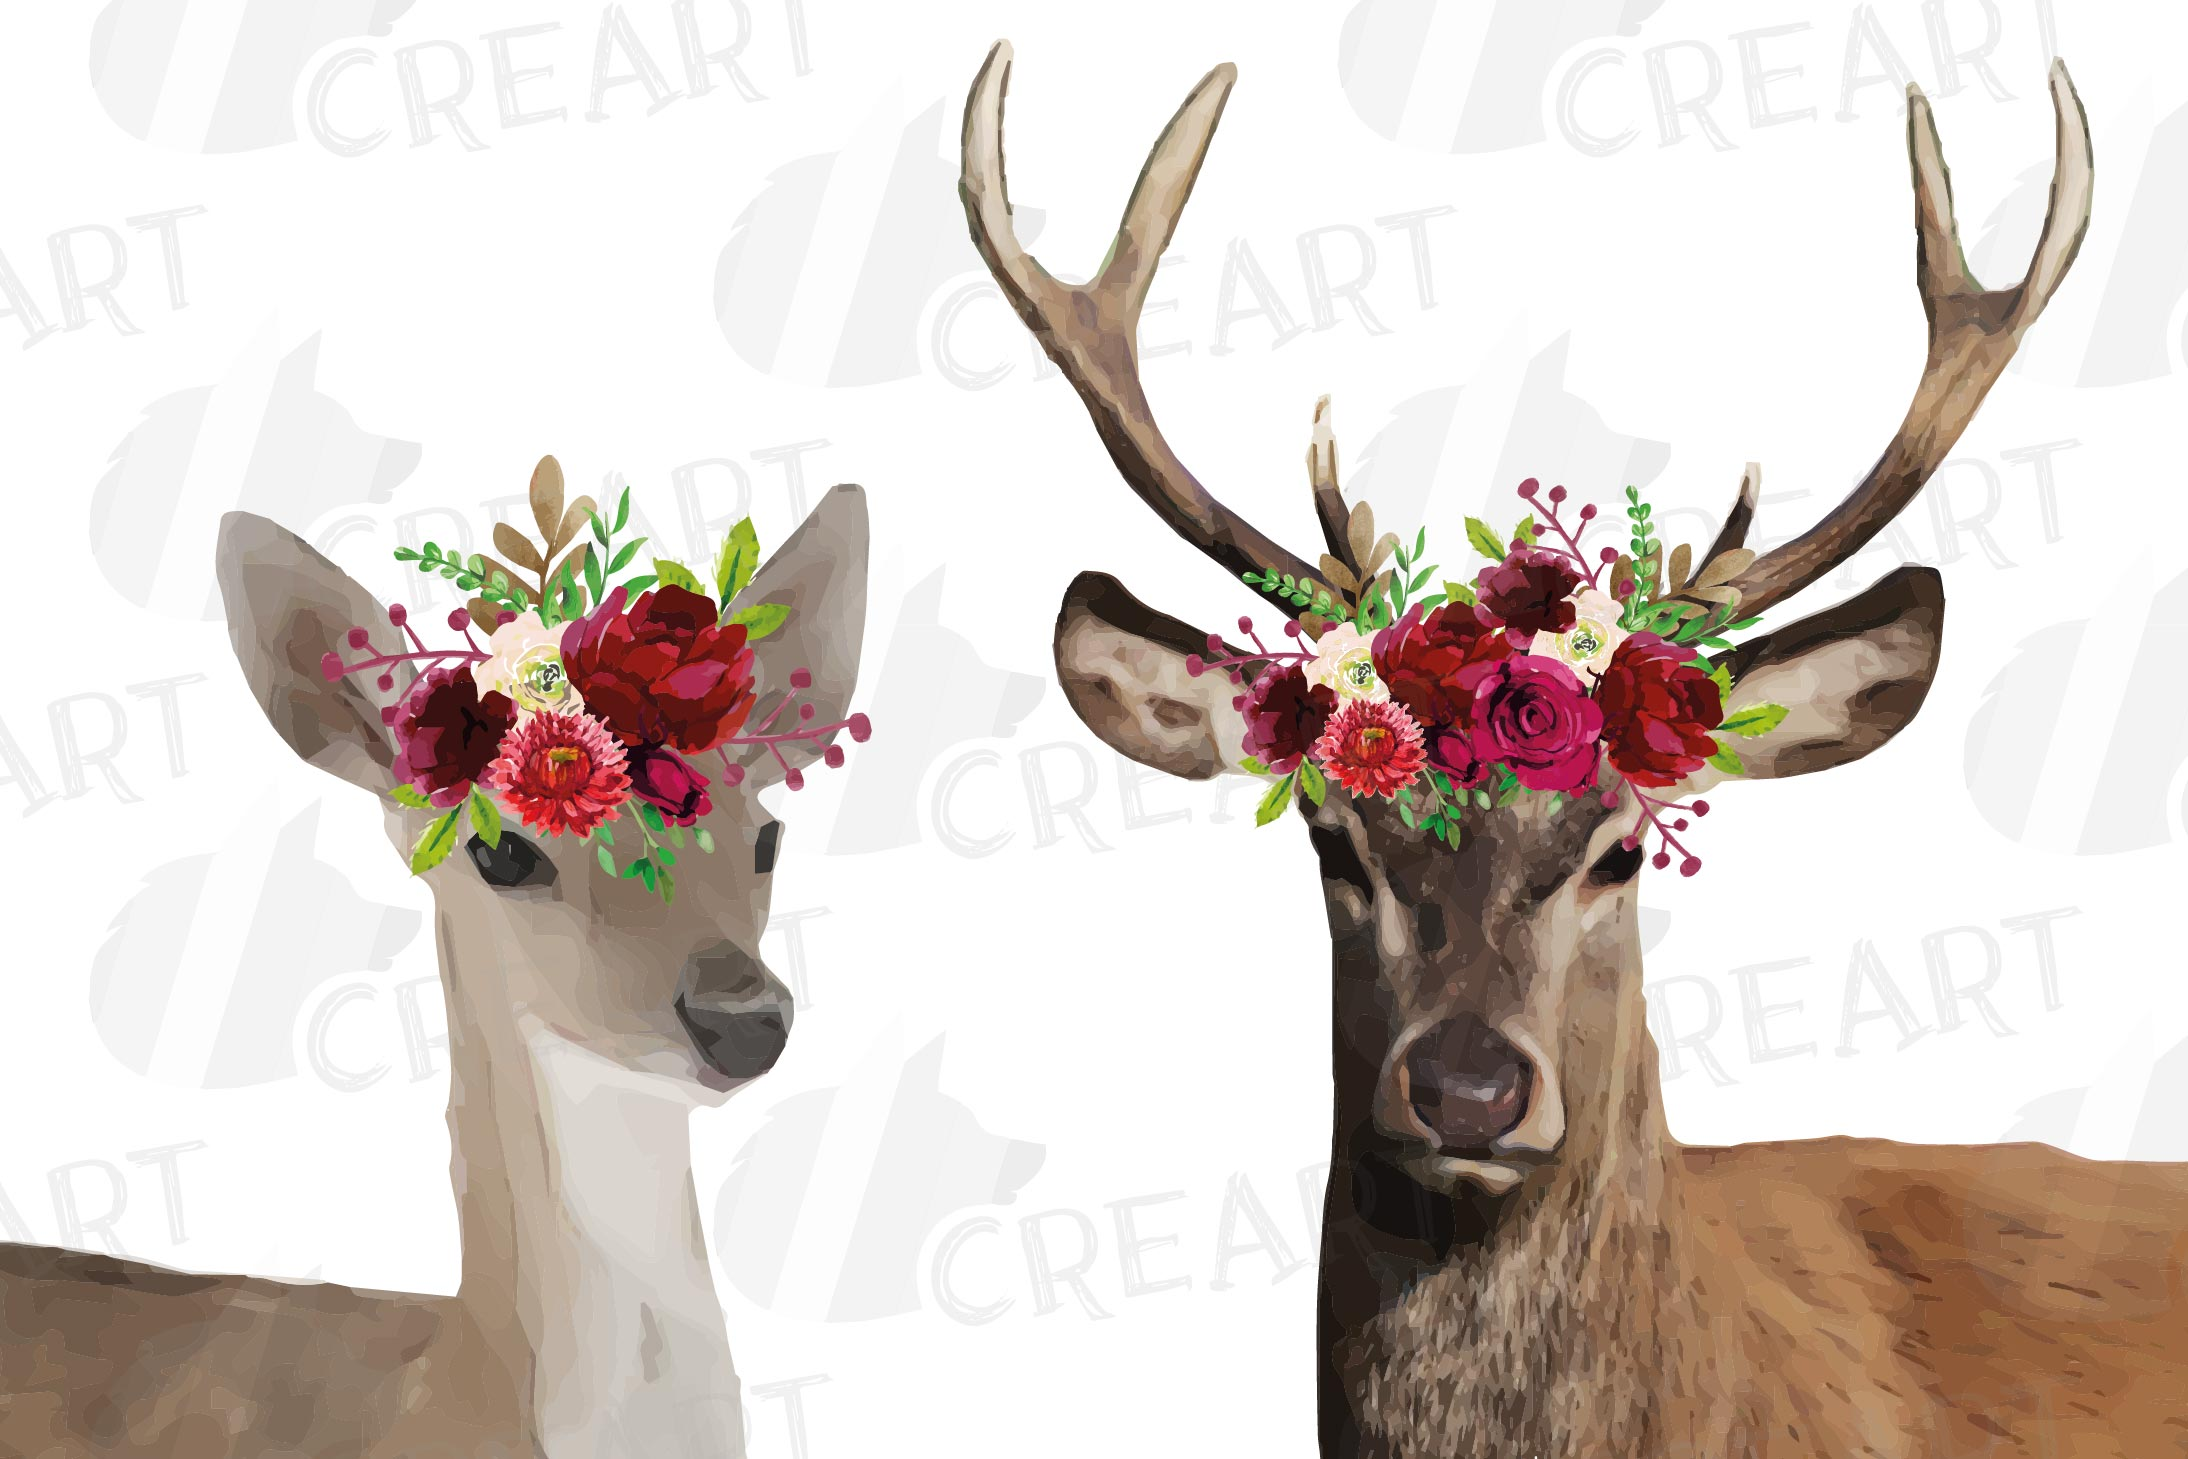 Deer couple with floral burgundy crown match shirt clip art example image 1